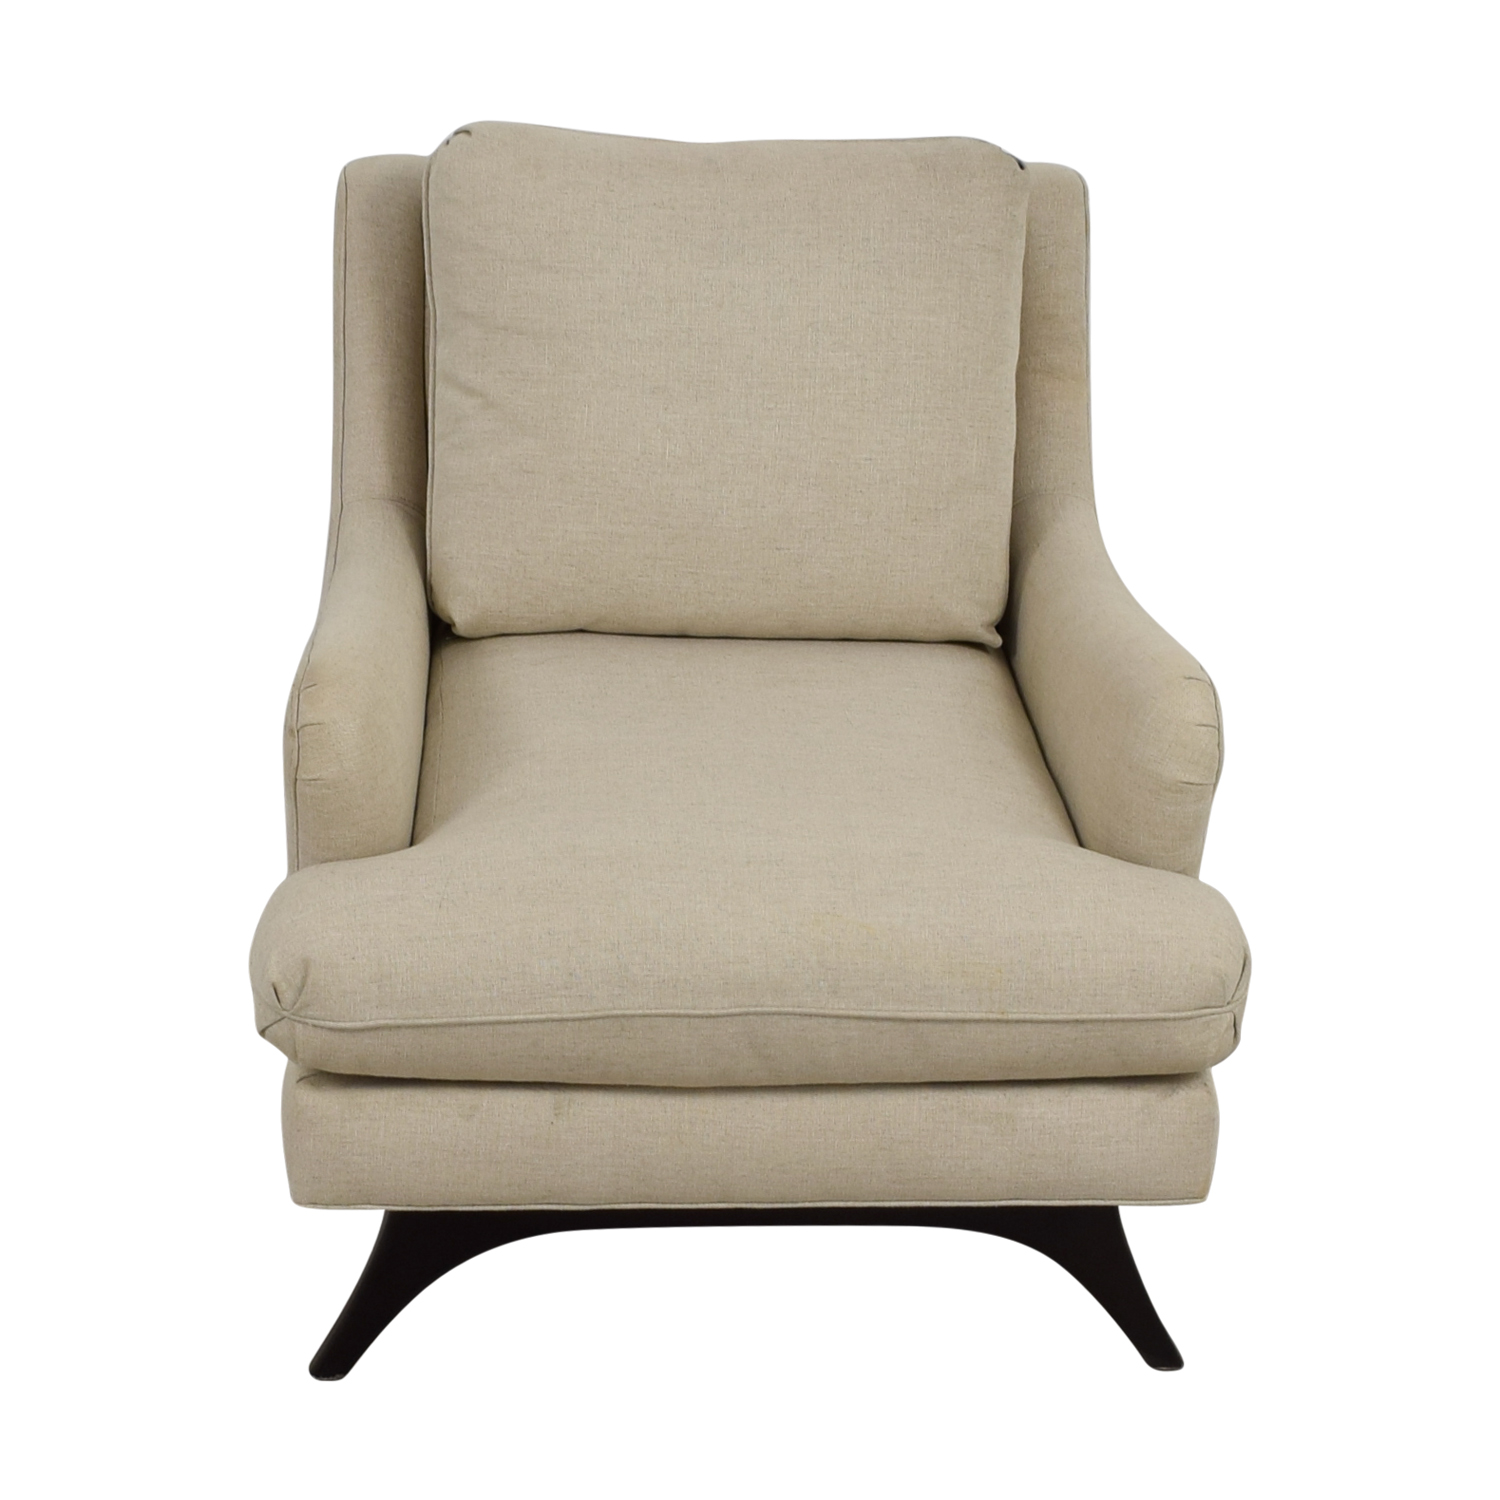 Younger Furniture Younger Furniture Mid Century Lewis Beige Accent Chair Chairs